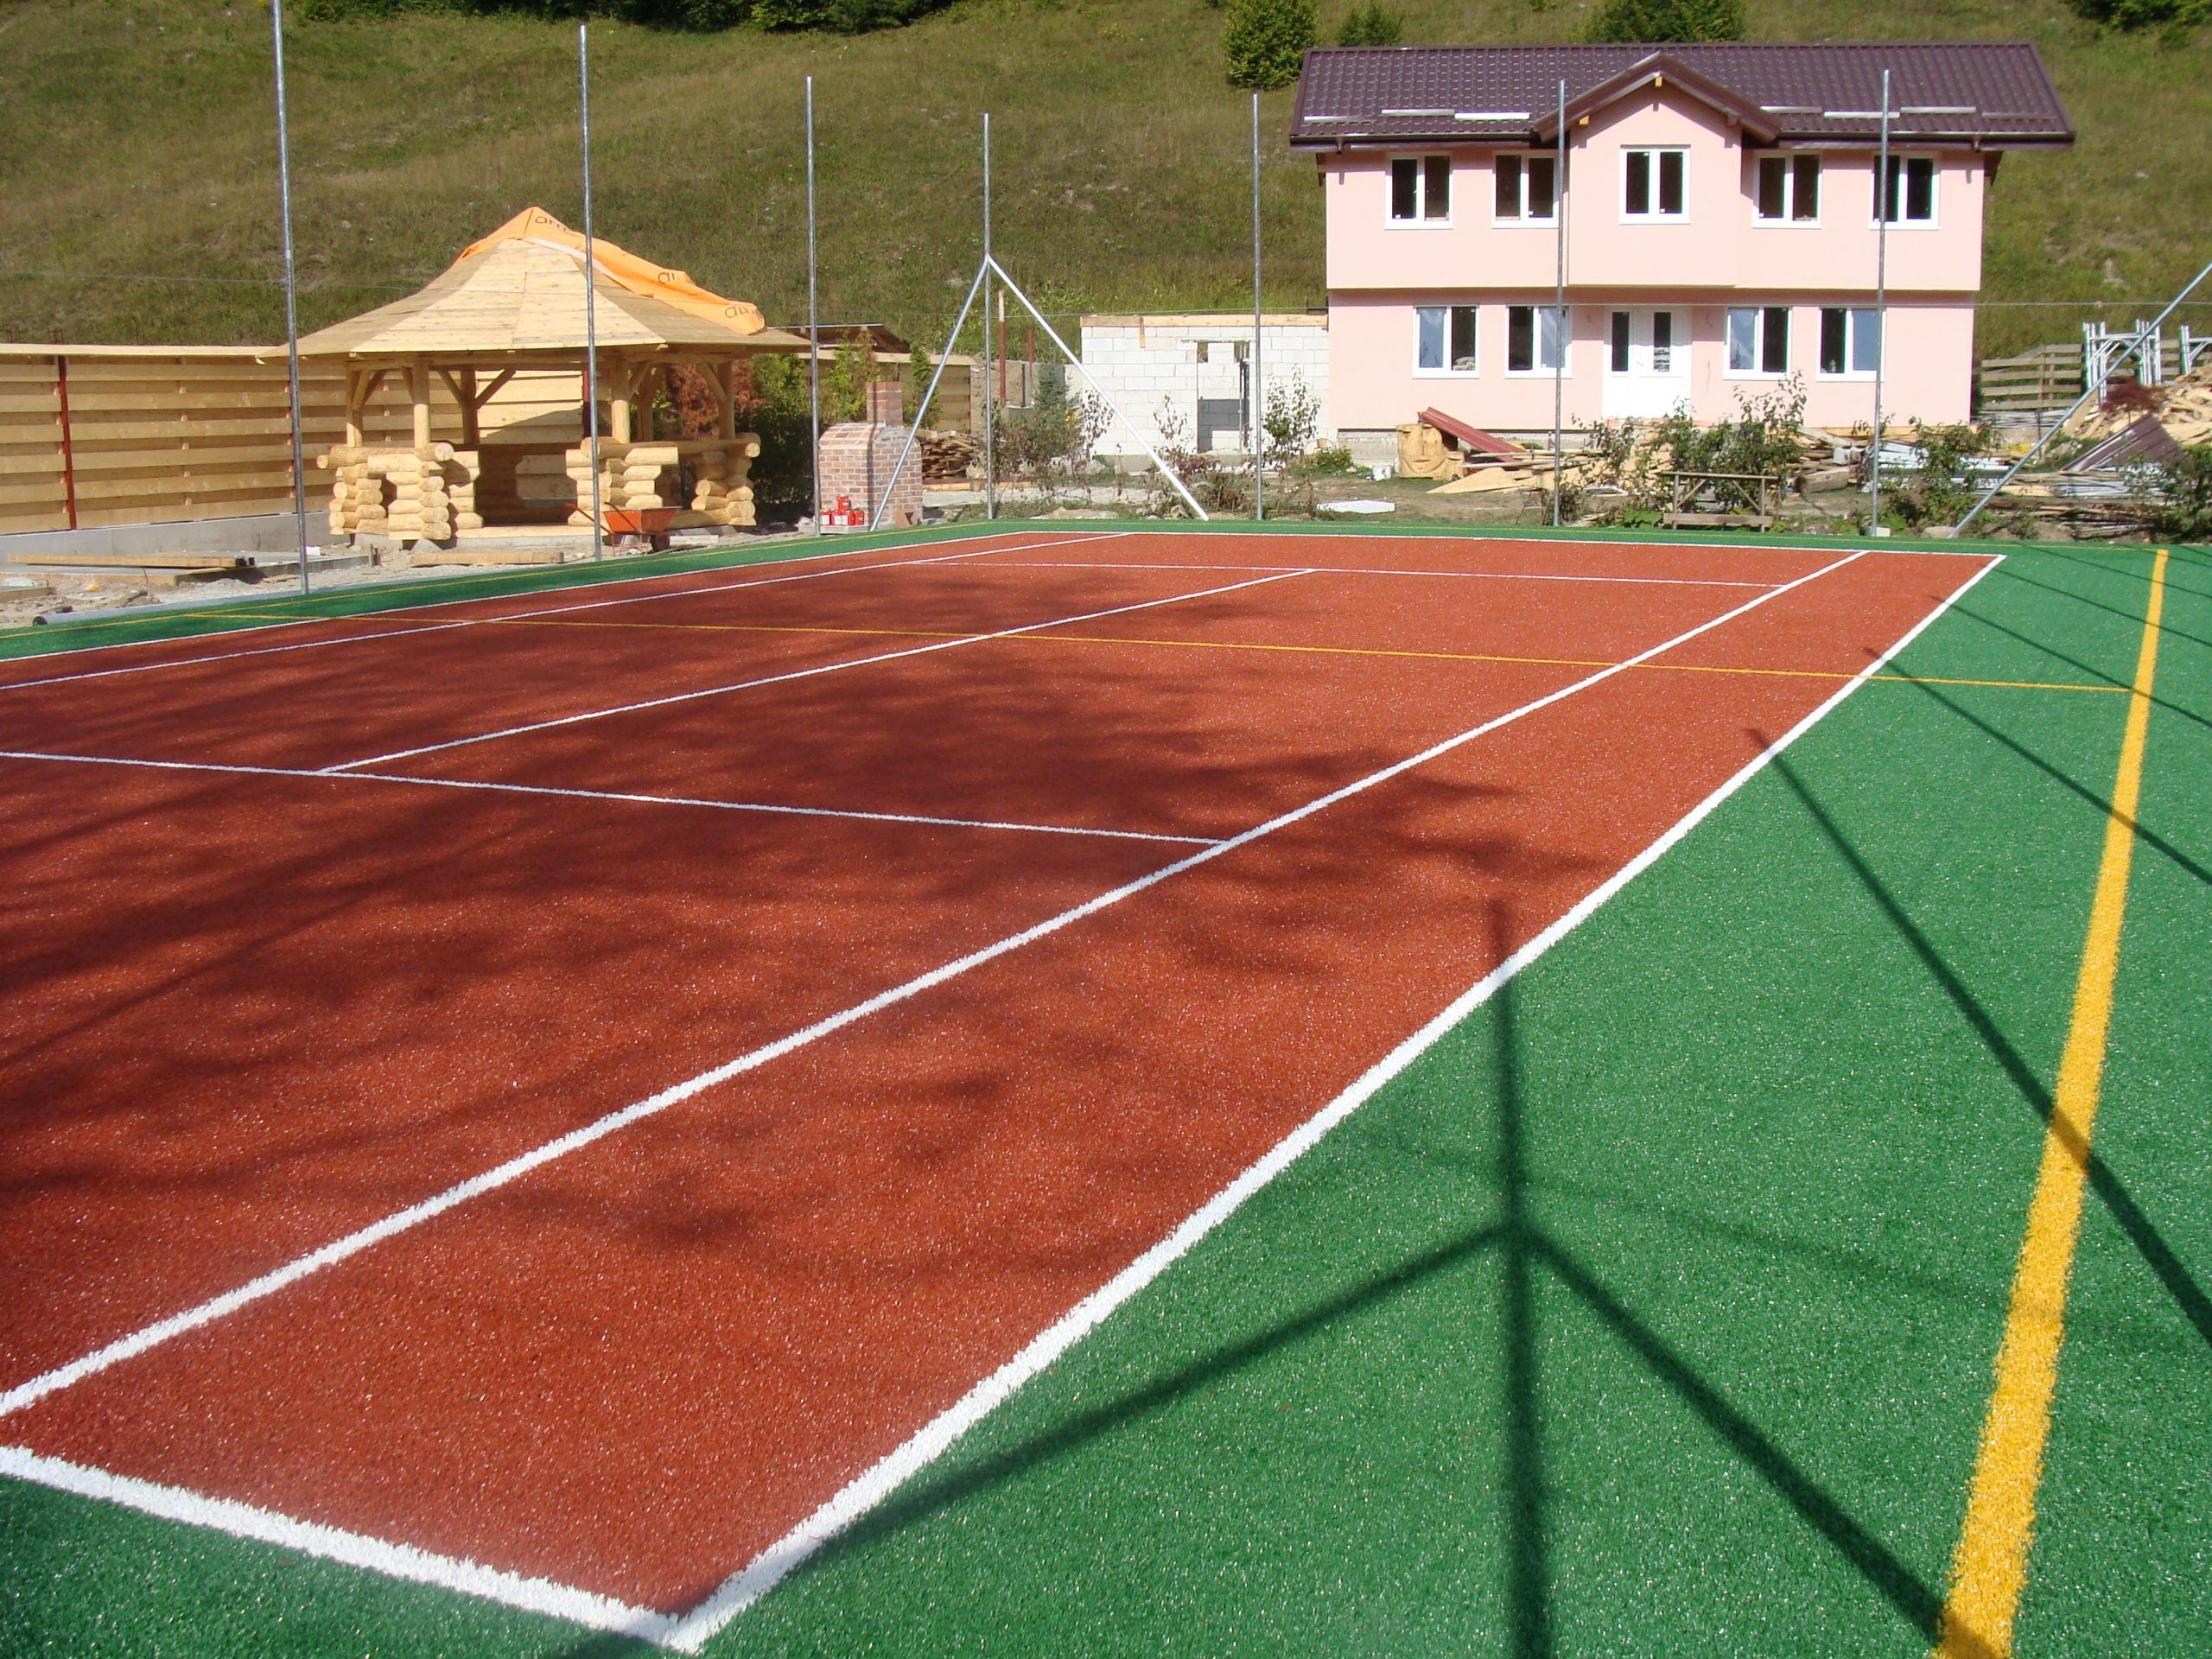 Gazon artificial tenis